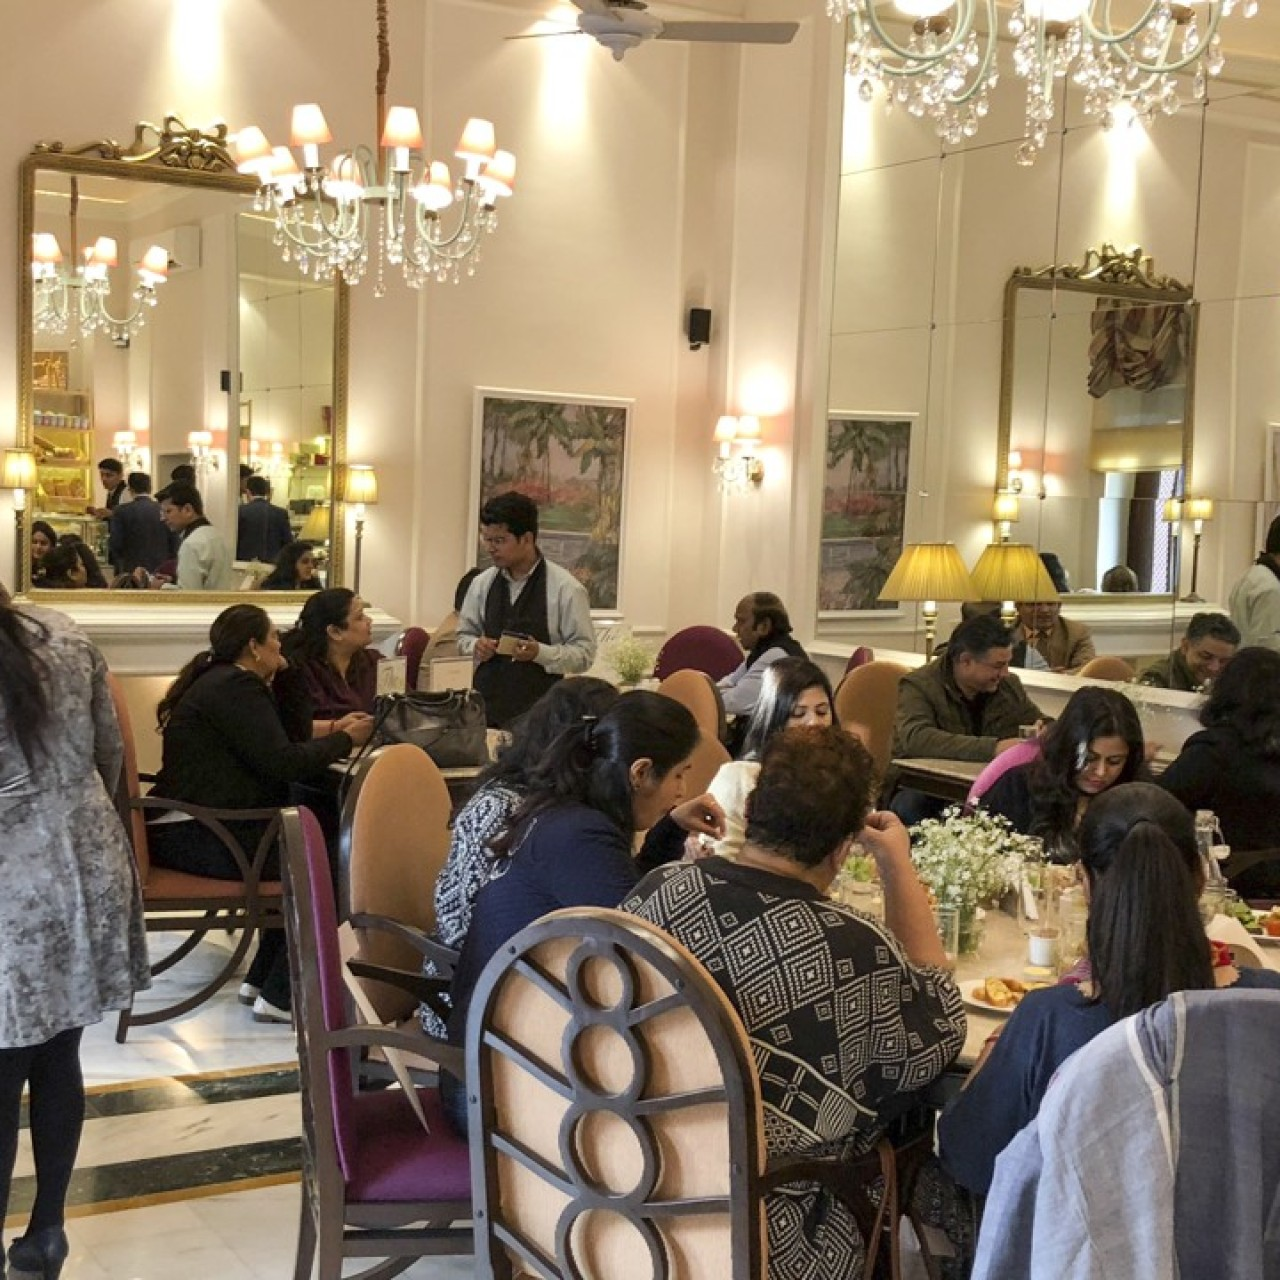 An authentic French bakery in India's New Delhi – it's not